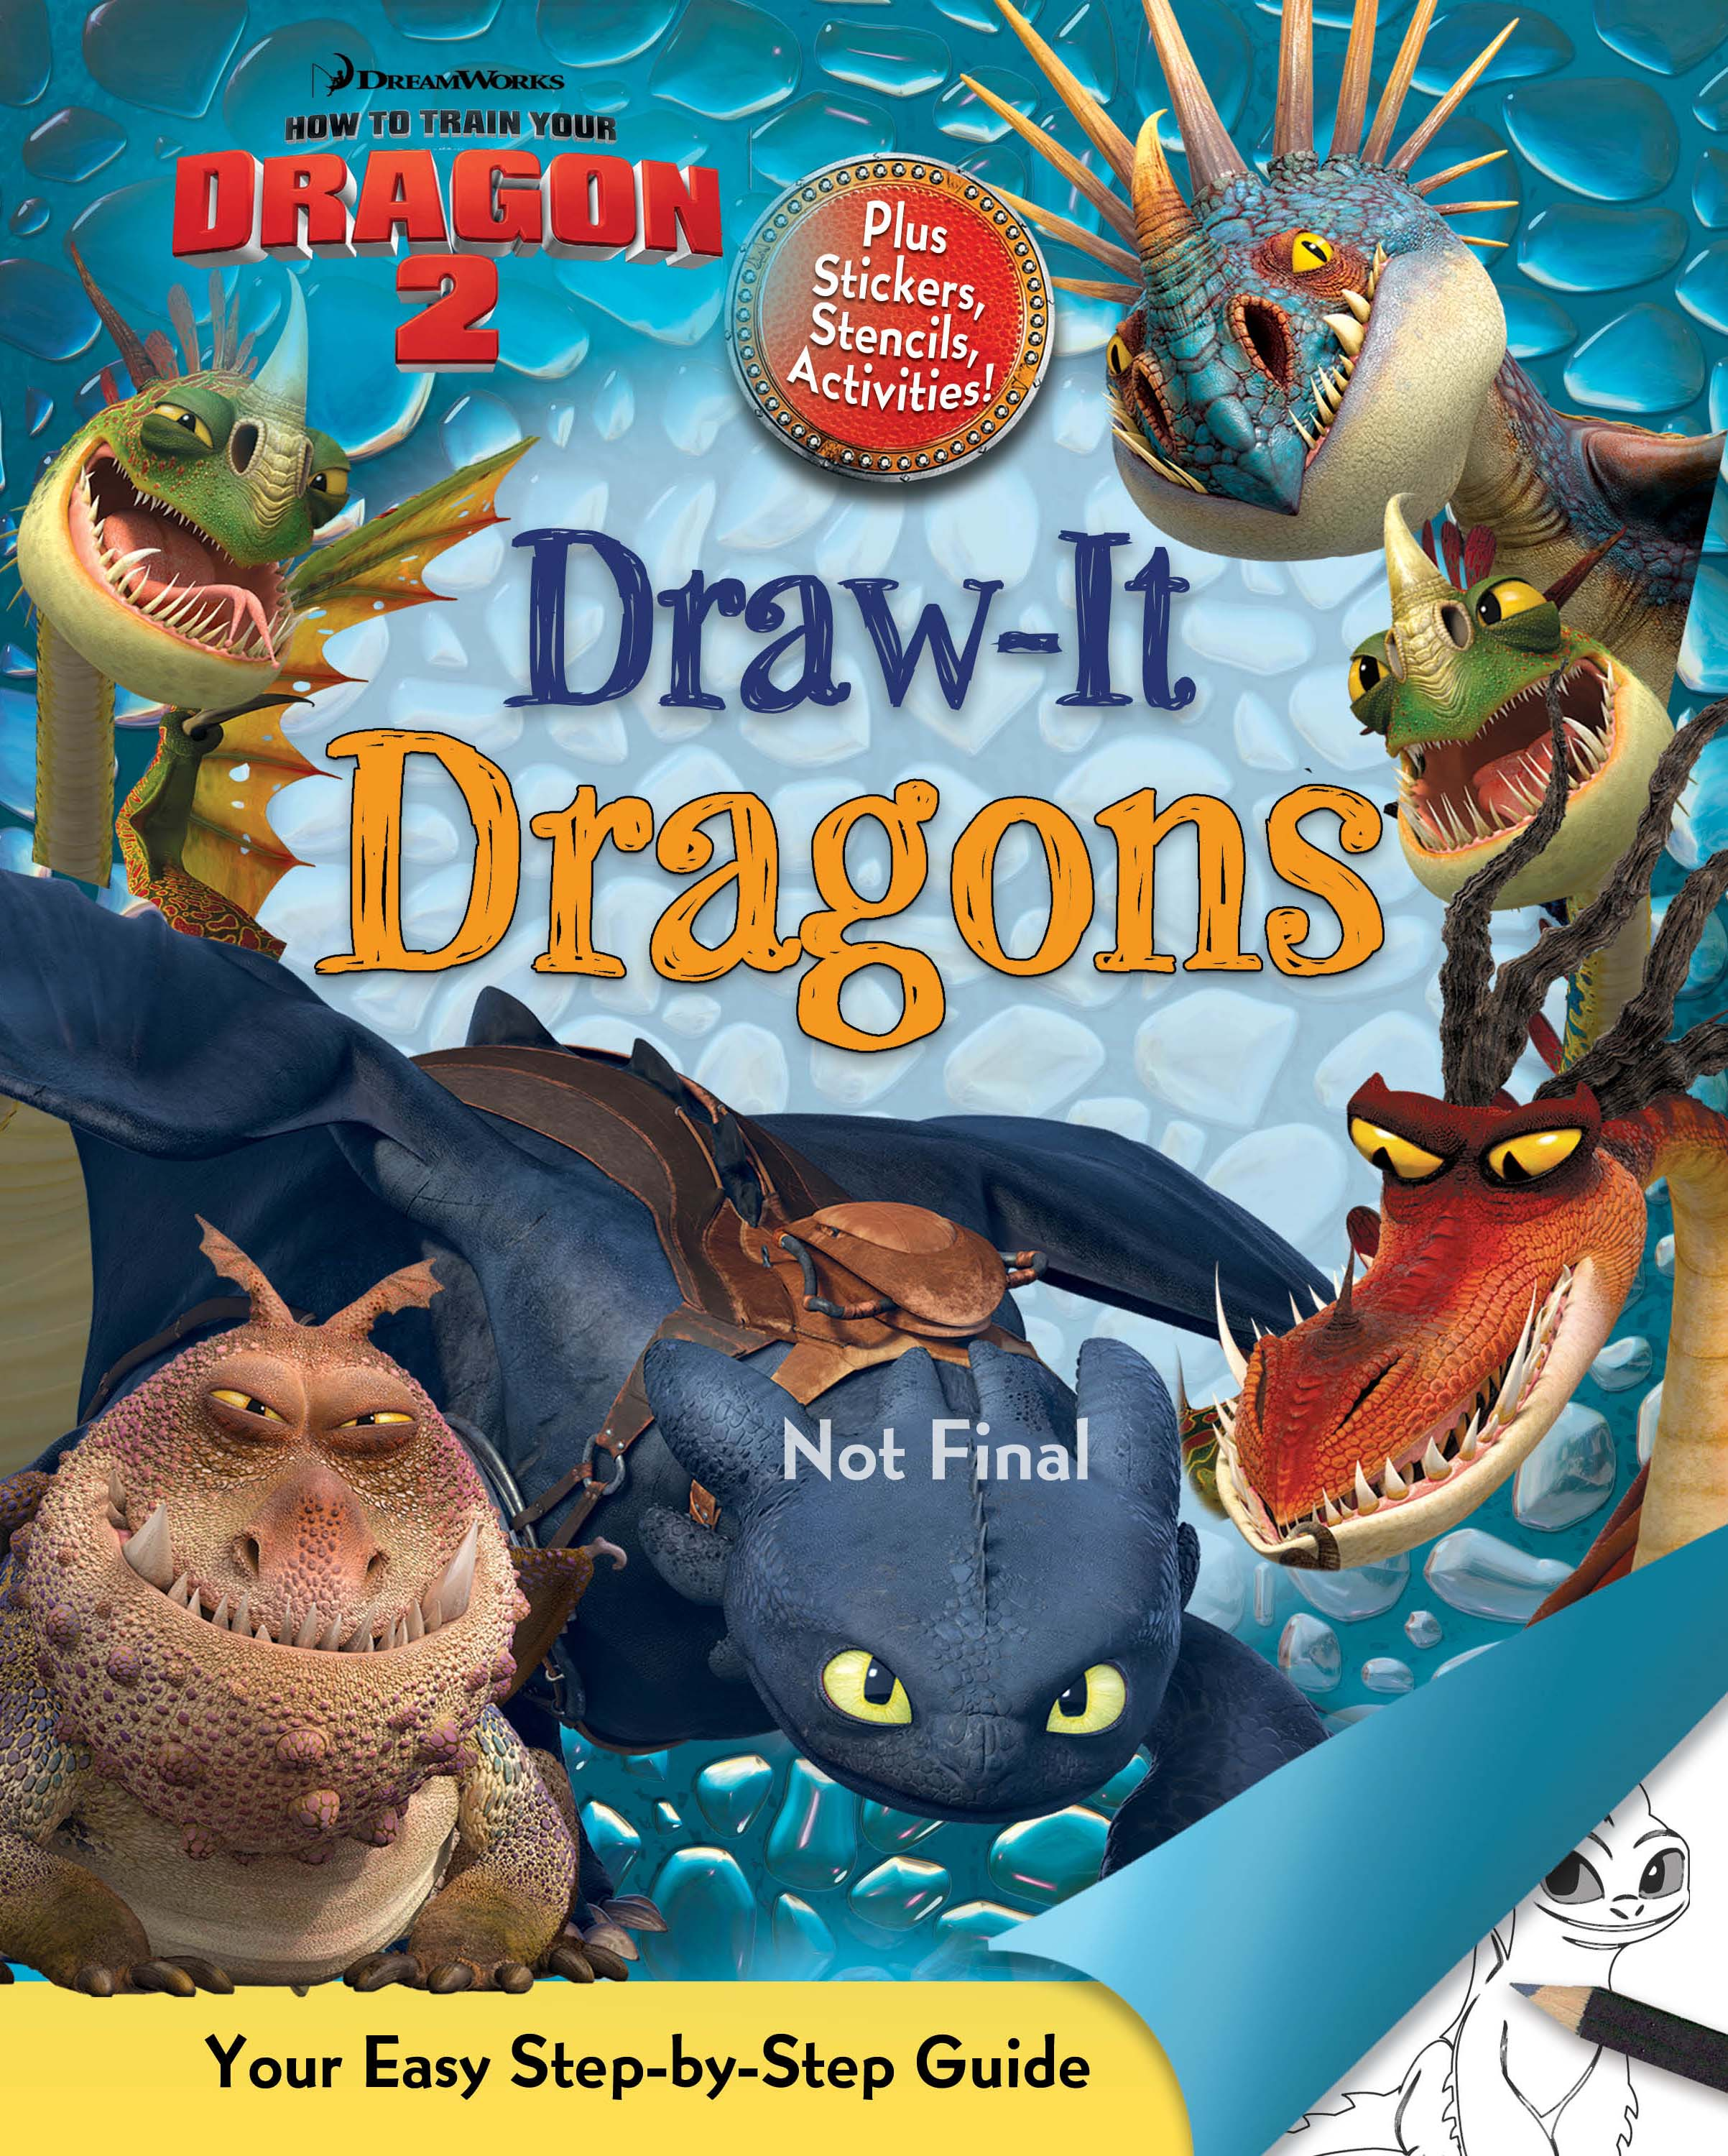 Dreamworks Dragons Drawings Product Image 1 of 1